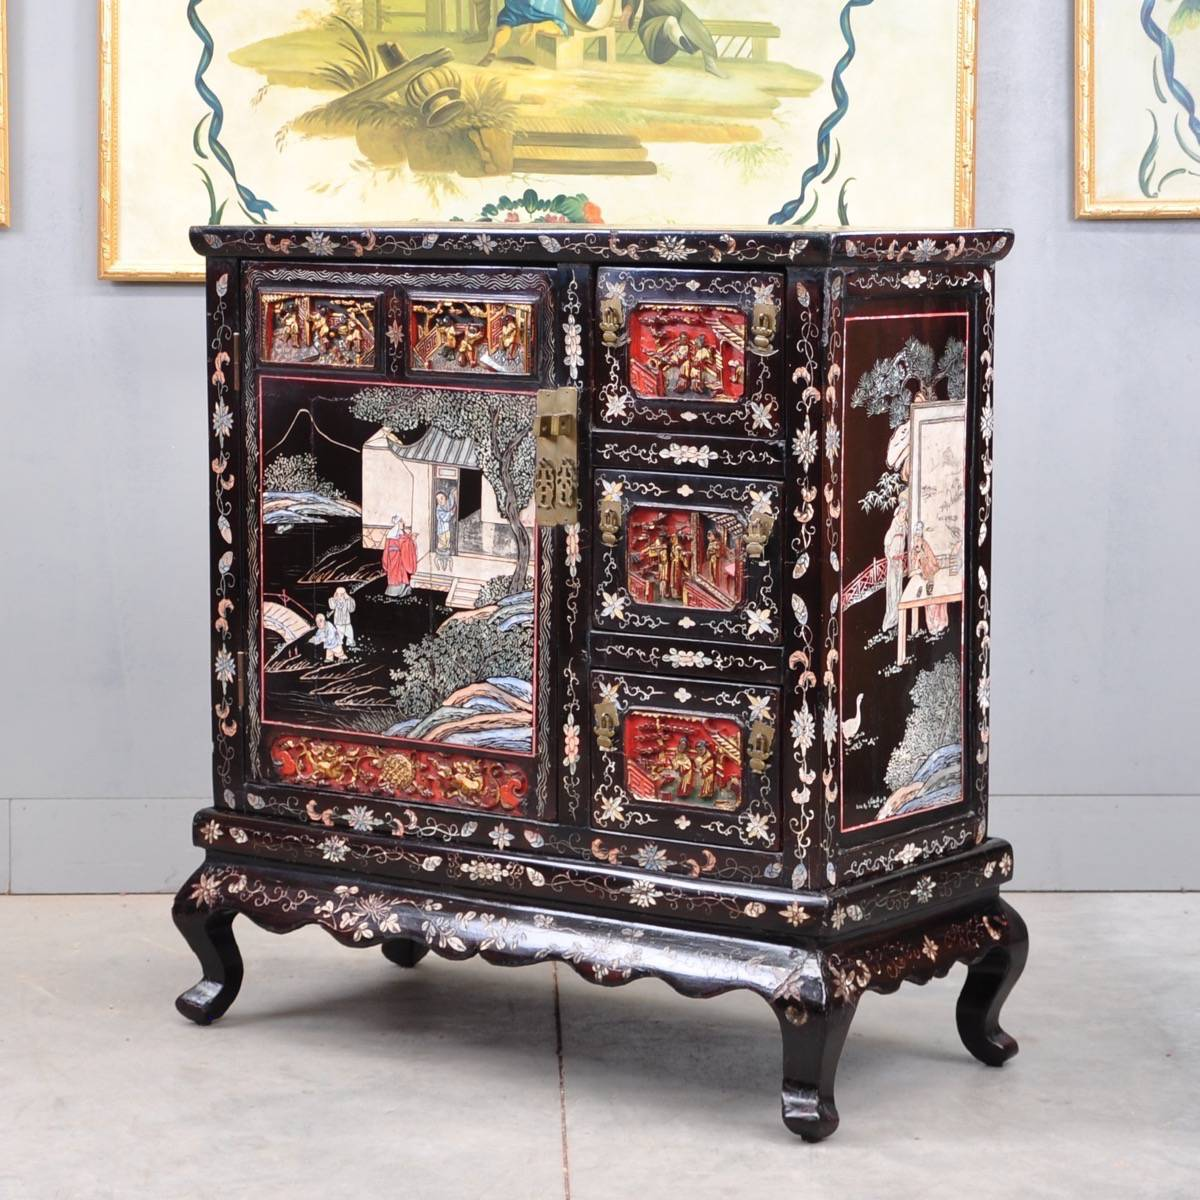 Charmant Chinese Lacquer, Coromandel And Carved Cabinet